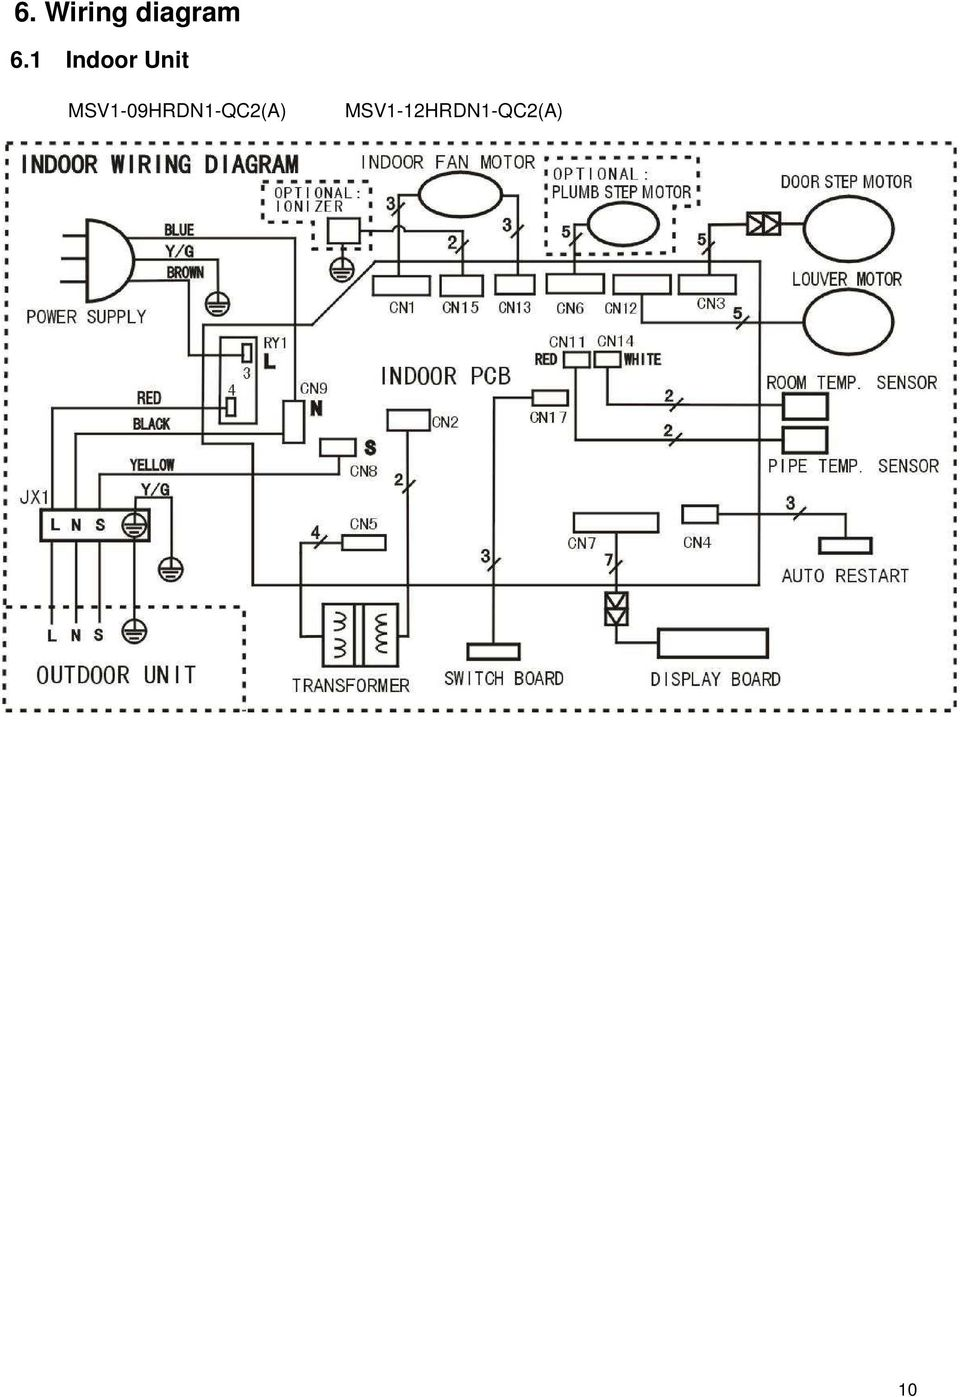 medium resolution of midea wiring diagram wiring diagram forward midea wiring diagram midea mini split wiring diagram wiring diagrams